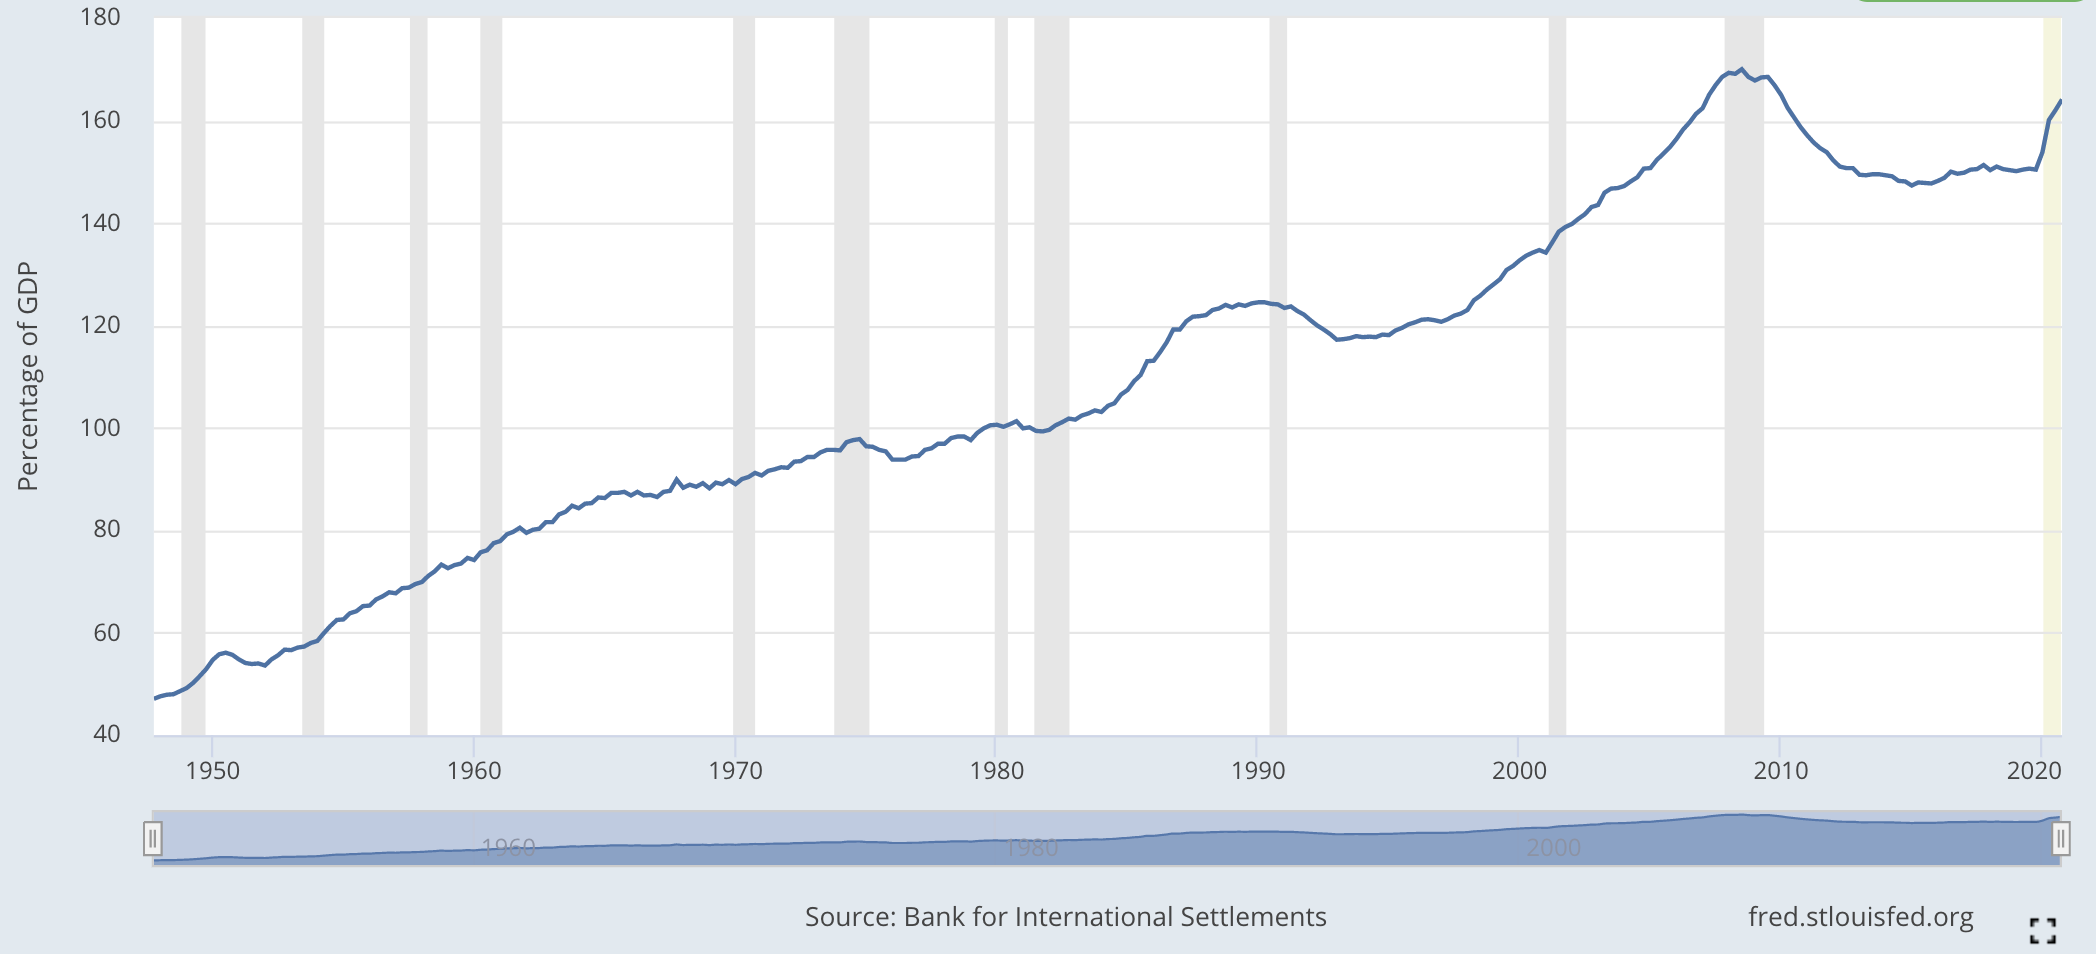 Total Credit to Private Non-Financial Sector for USA as of 2020